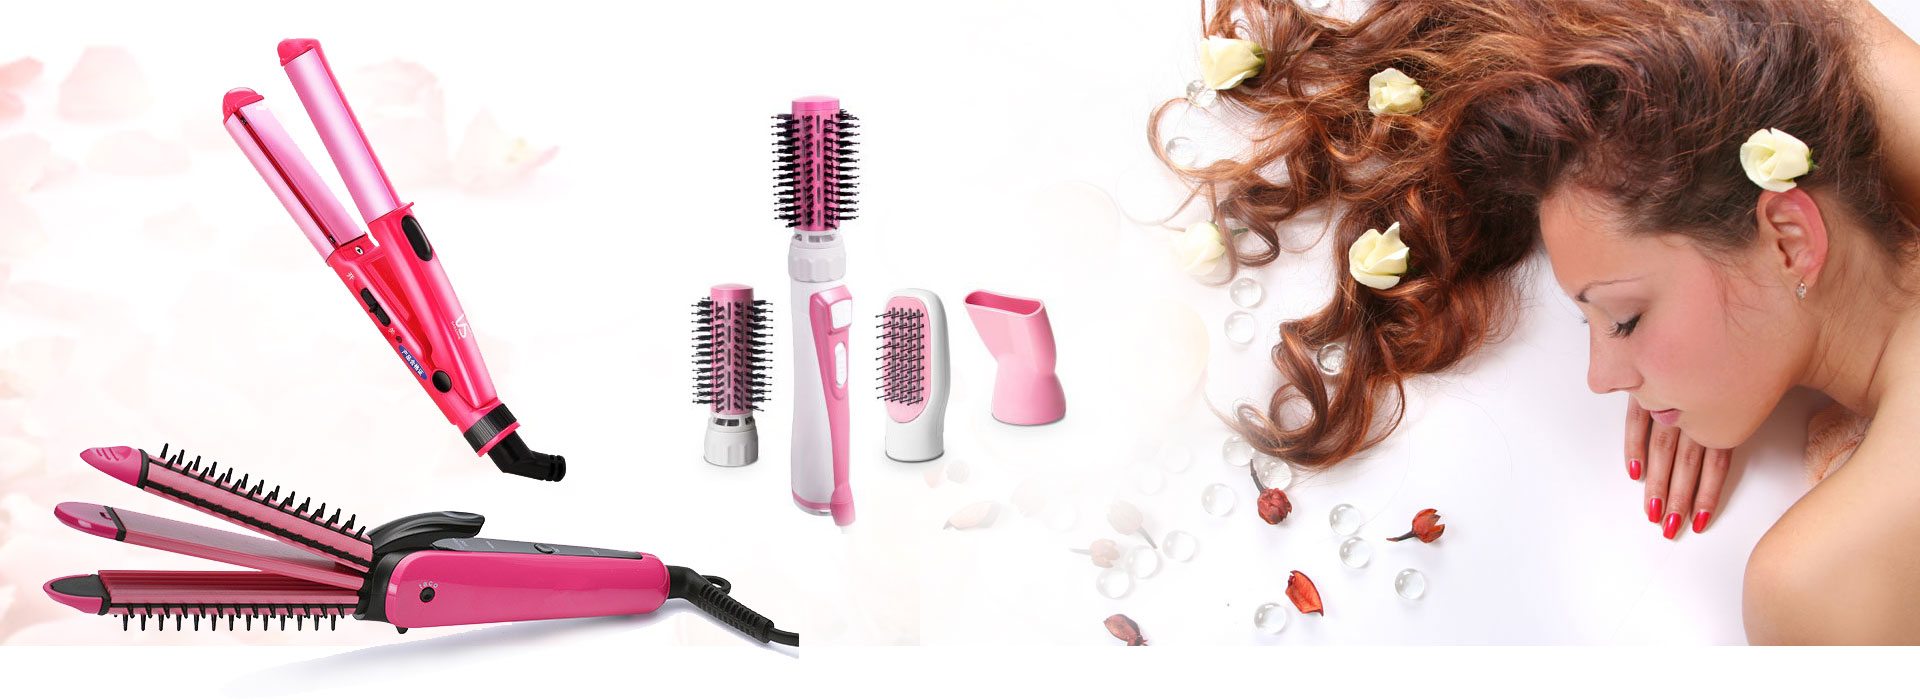 We Offer Beauty Supply Tools For Wholesalers Distributors